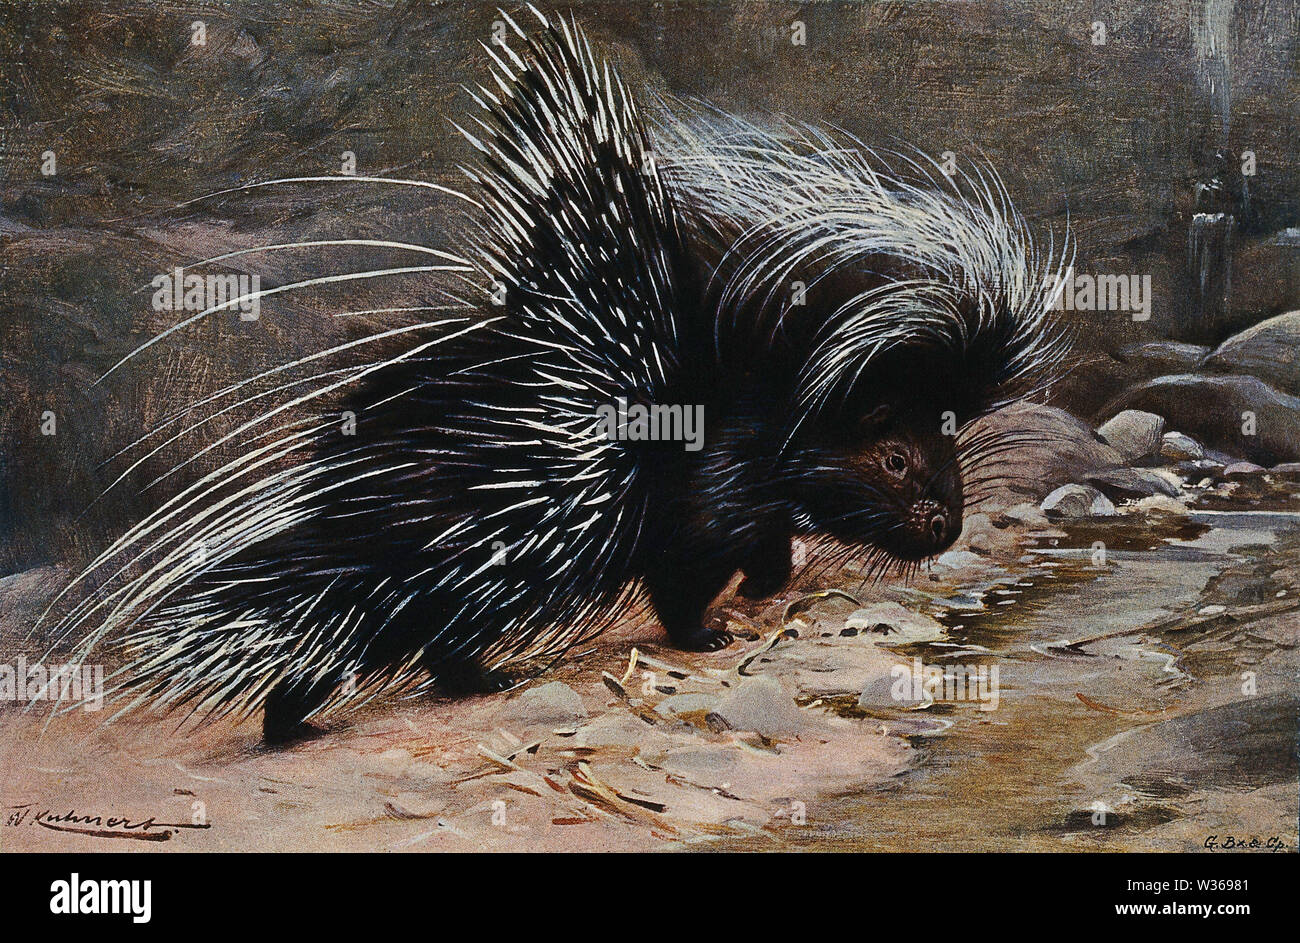 A crested porcupine. Colour lithograph after W. Kuhnert. Stock Photo